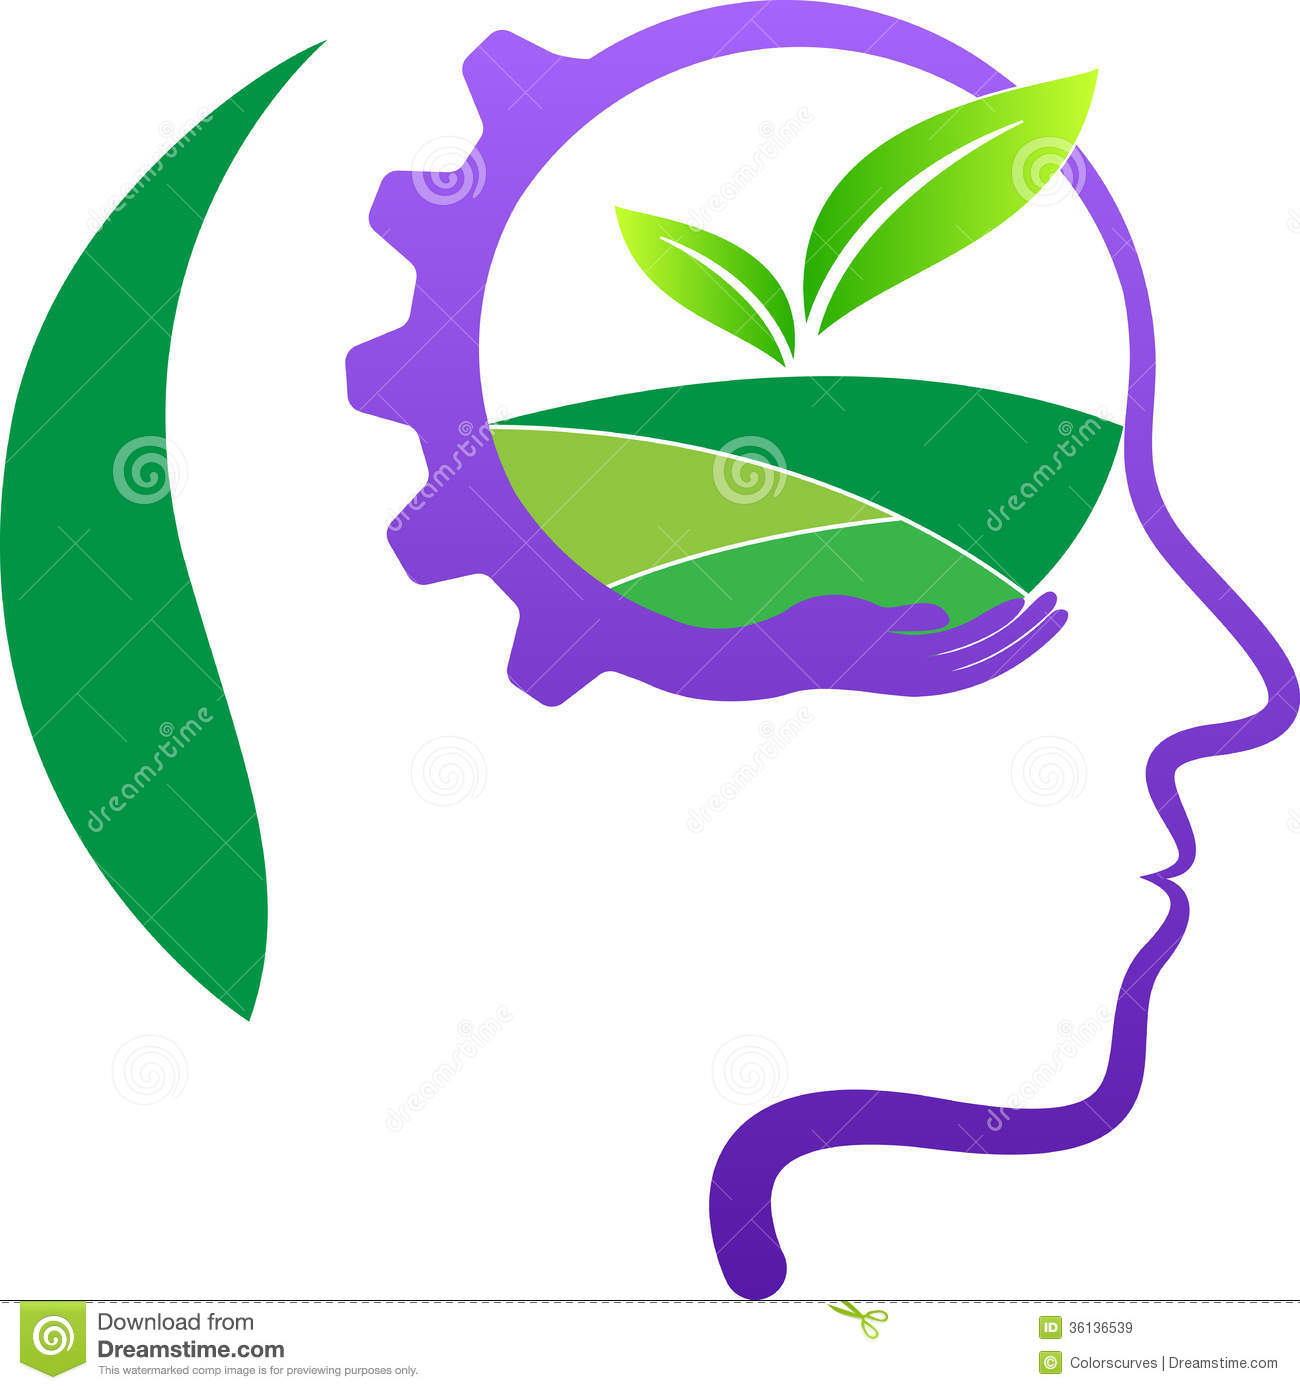 Think green save nature